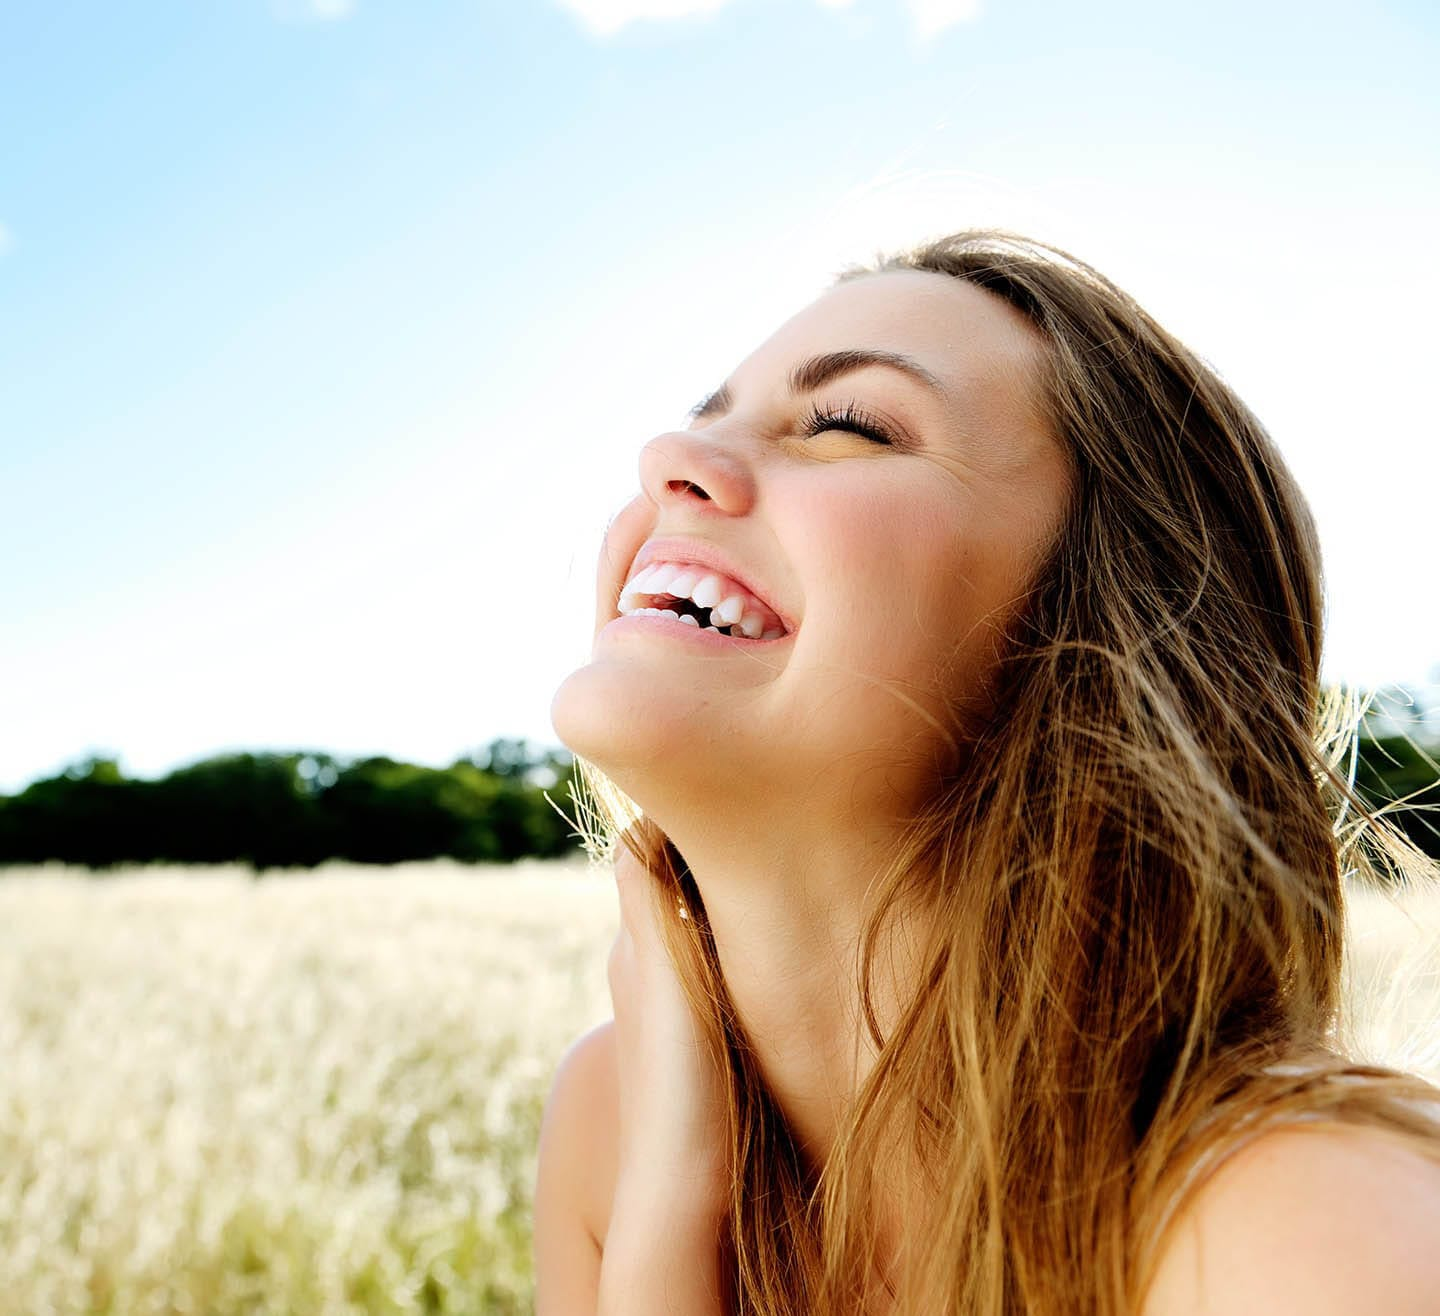 Smiling young adult in a field